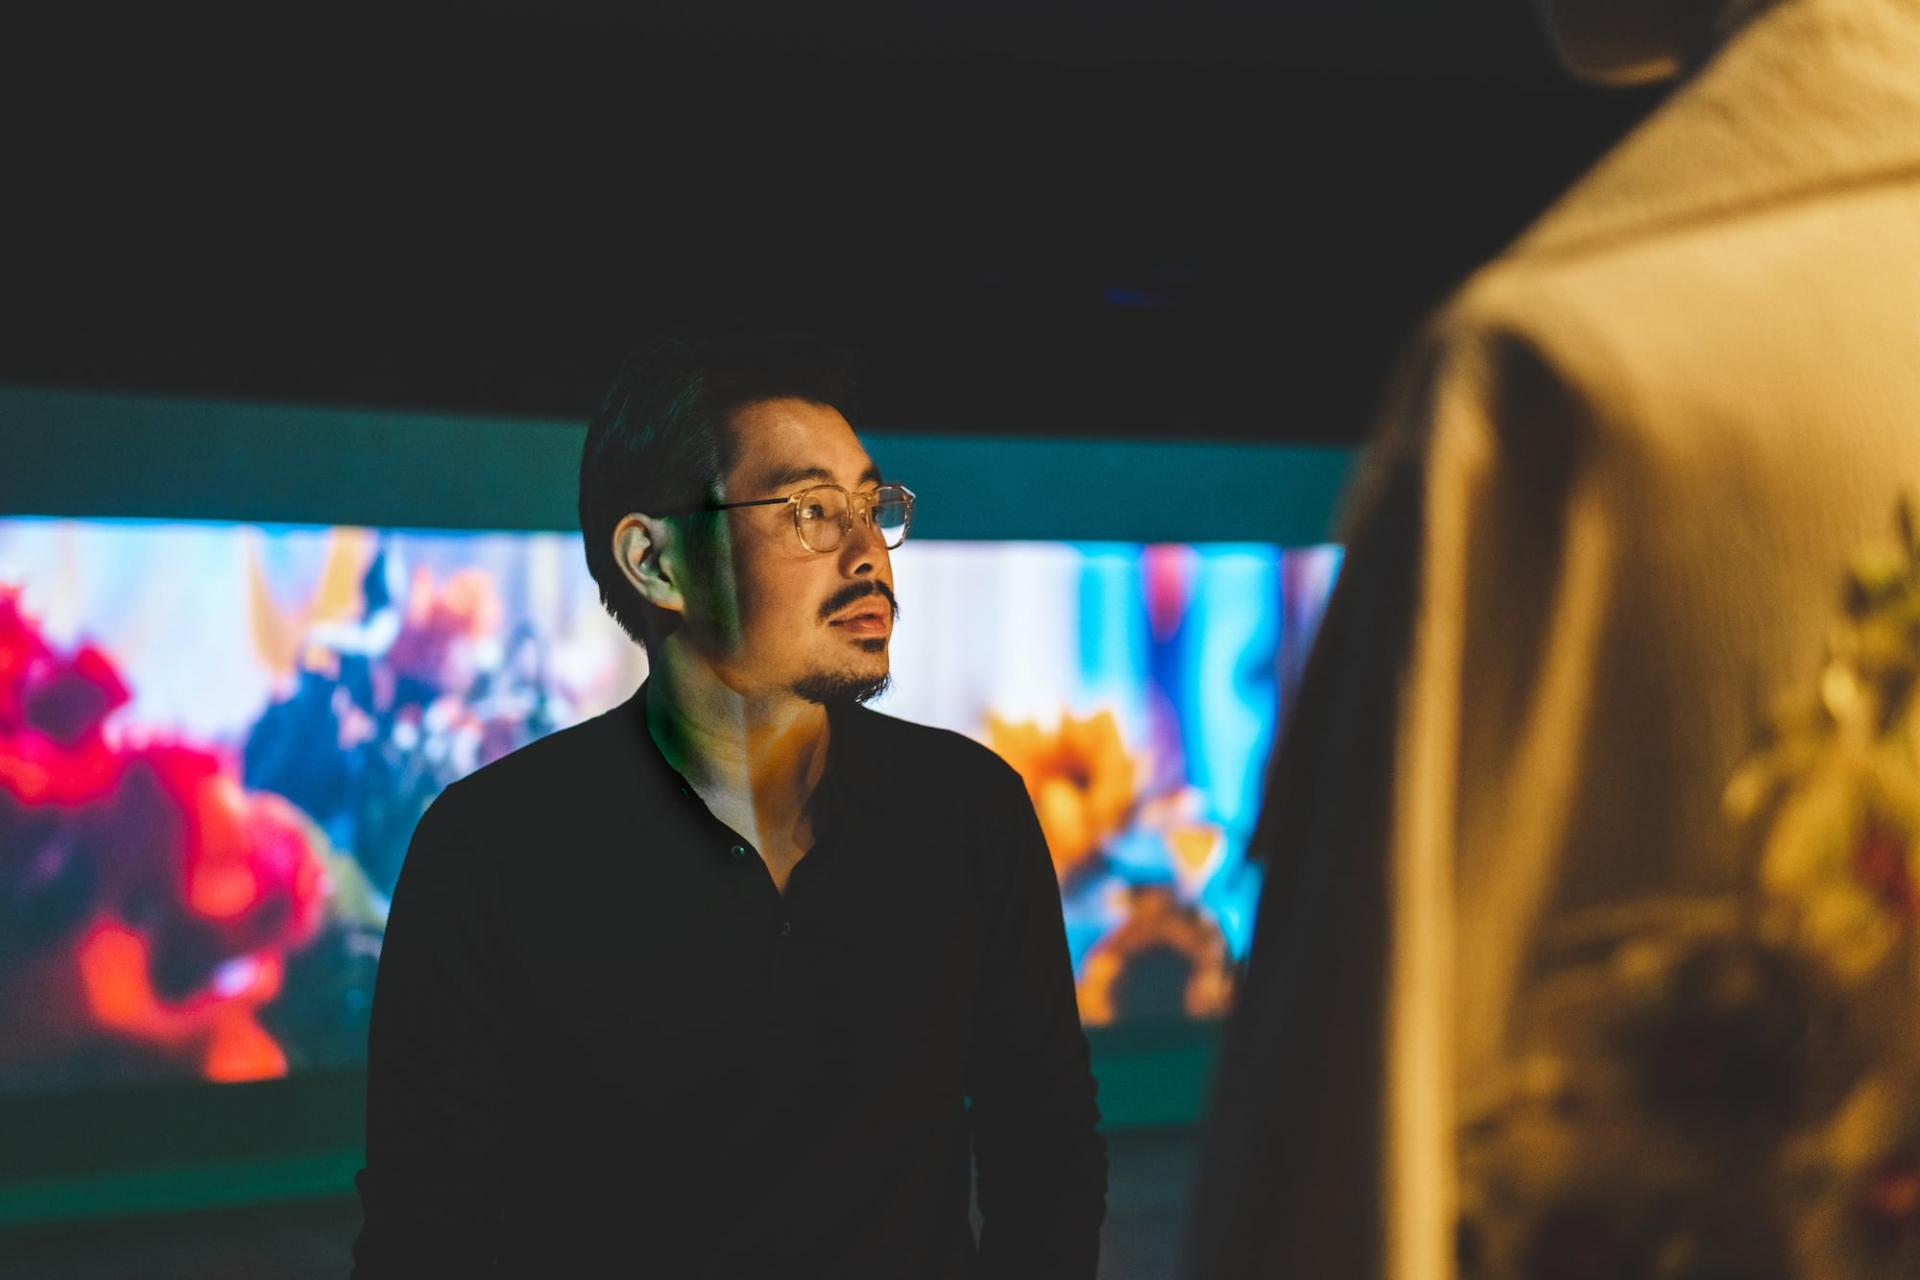 Overseas Vietnamese director partners with int'l organization for a #StopAsianHate film